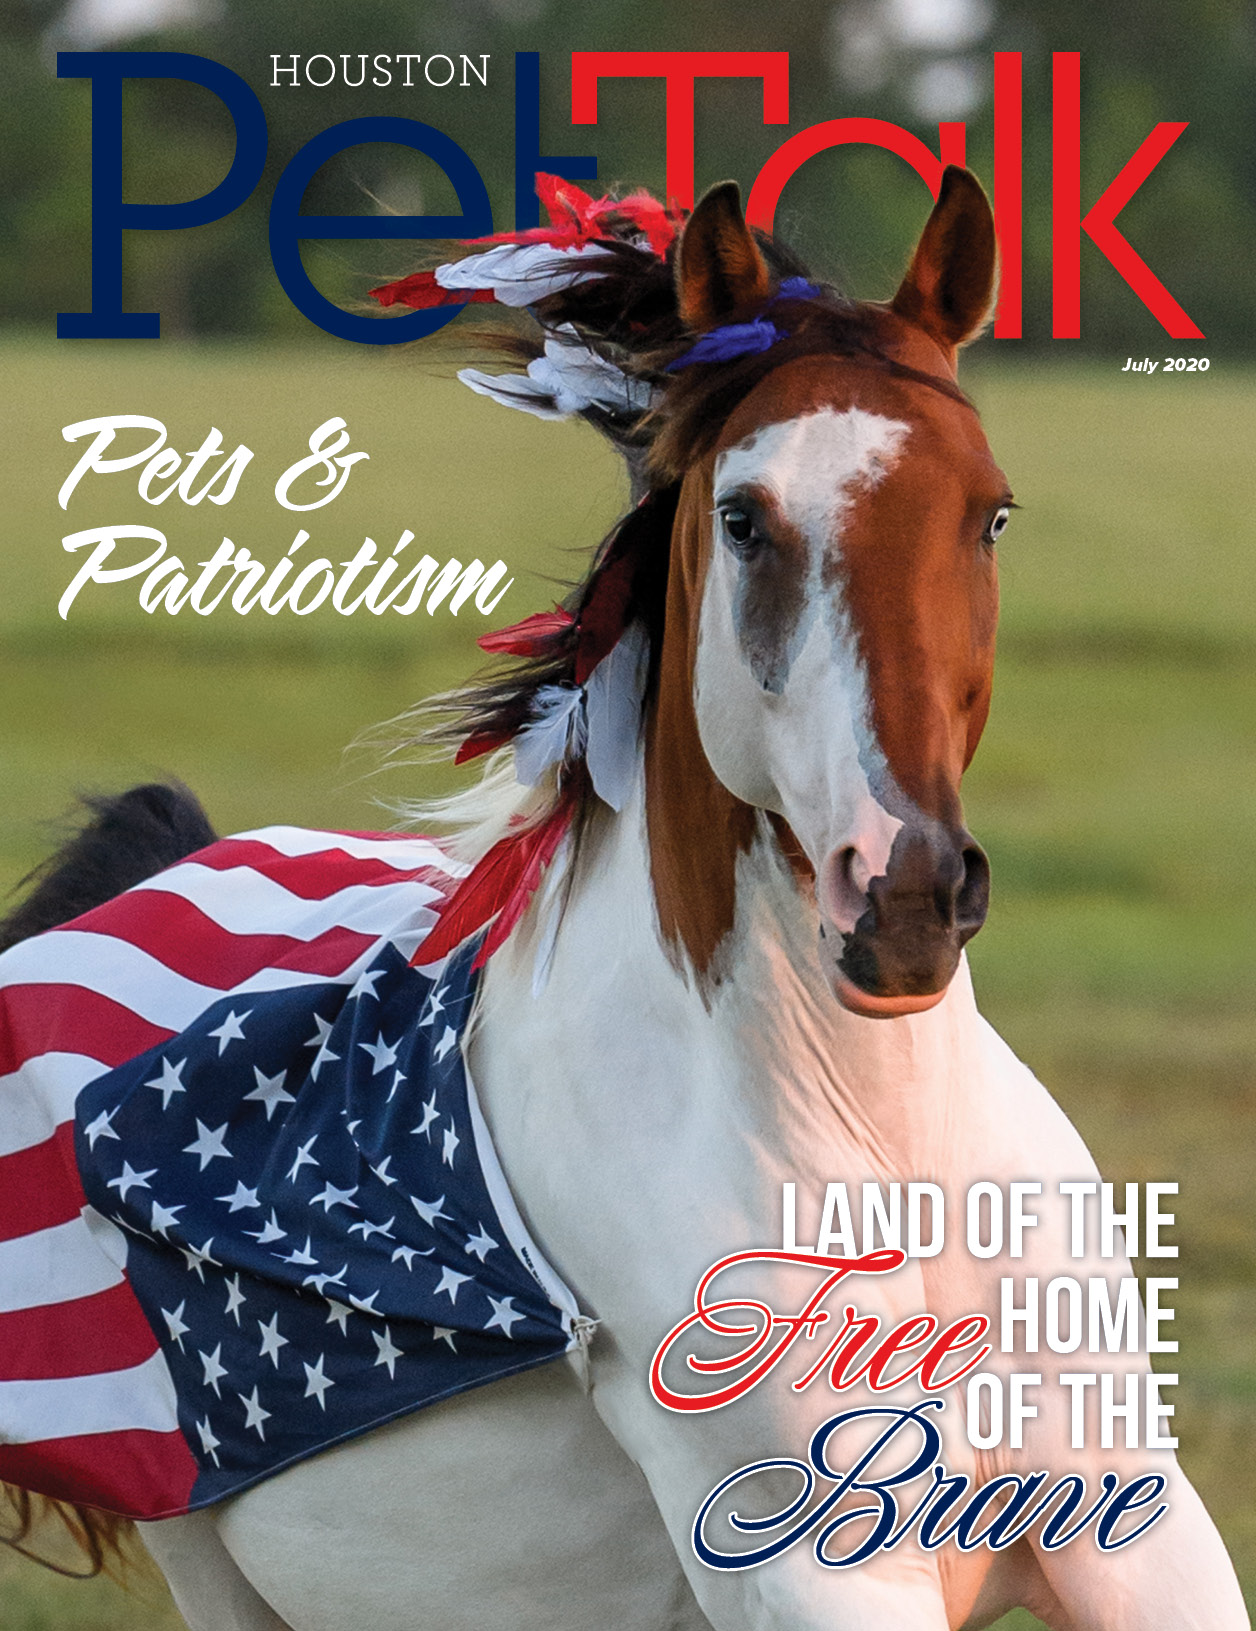 July 2020 Digital Issue of Houston PetTalk